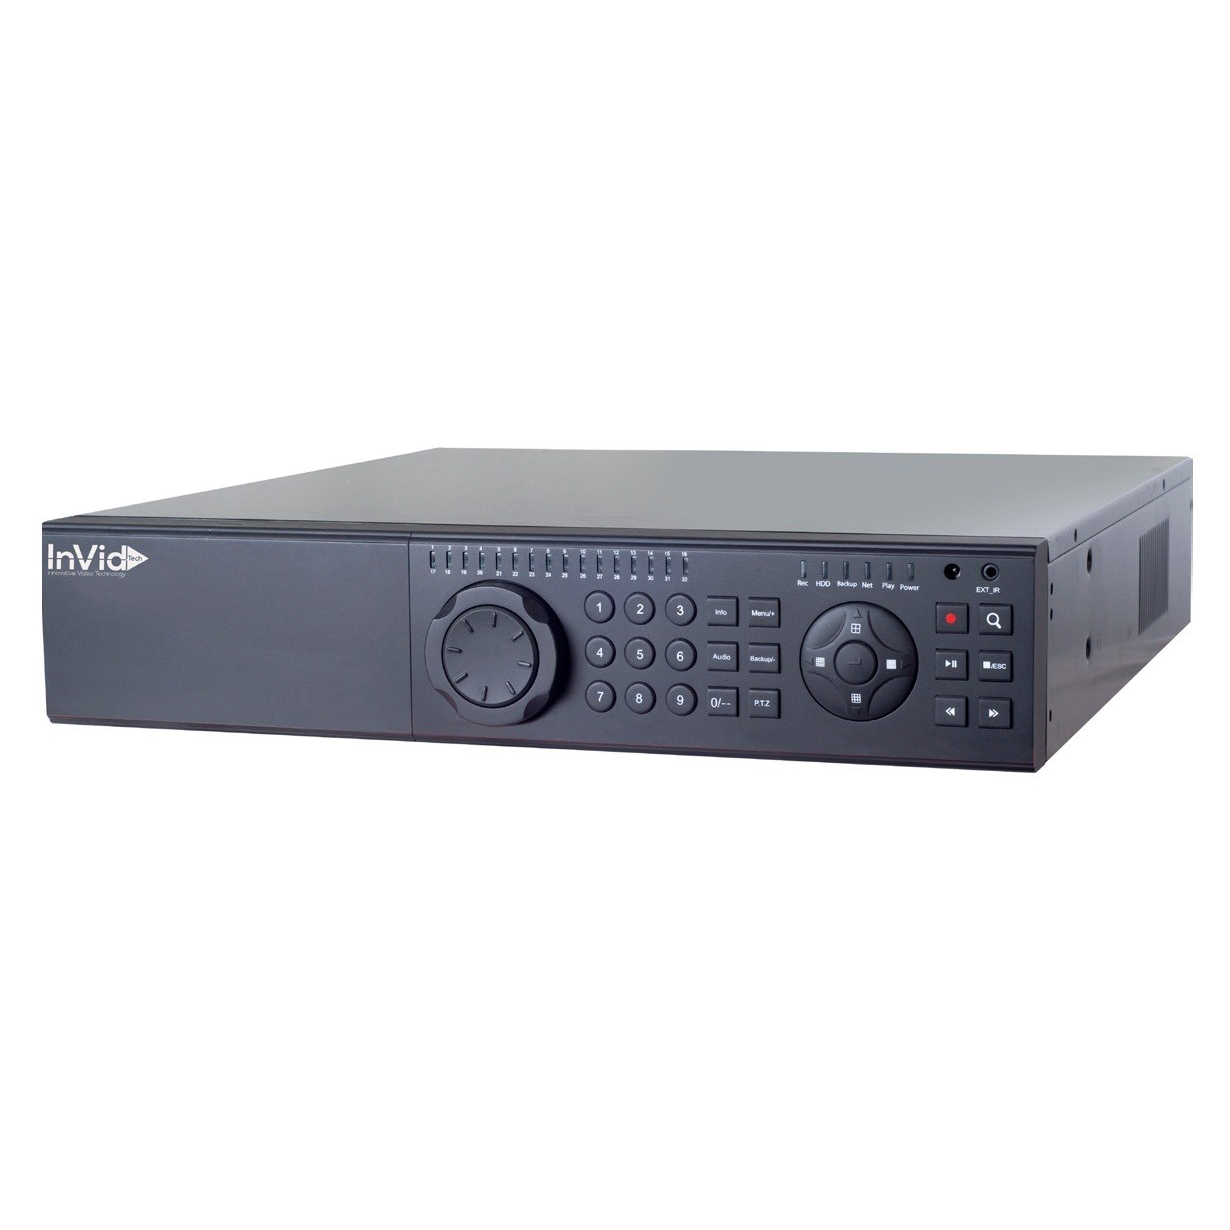 PN1A-32X16 INVID 32 Channel NVR with 16 Plug & Play Ports. No hard drive.